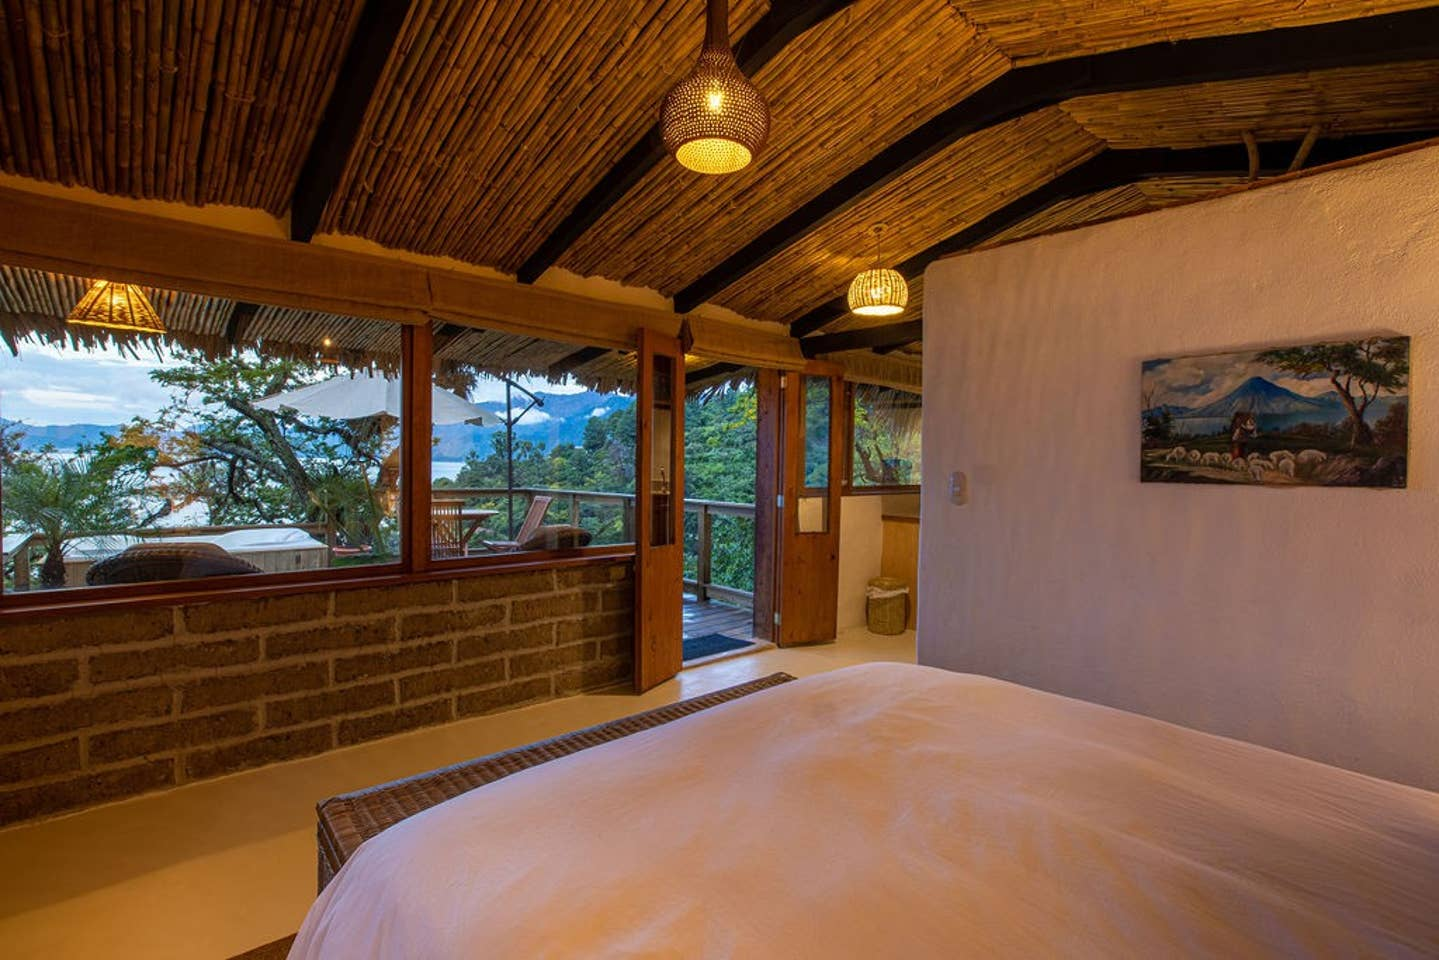 1bd/1 bath Cabin with stunning views and hot tub